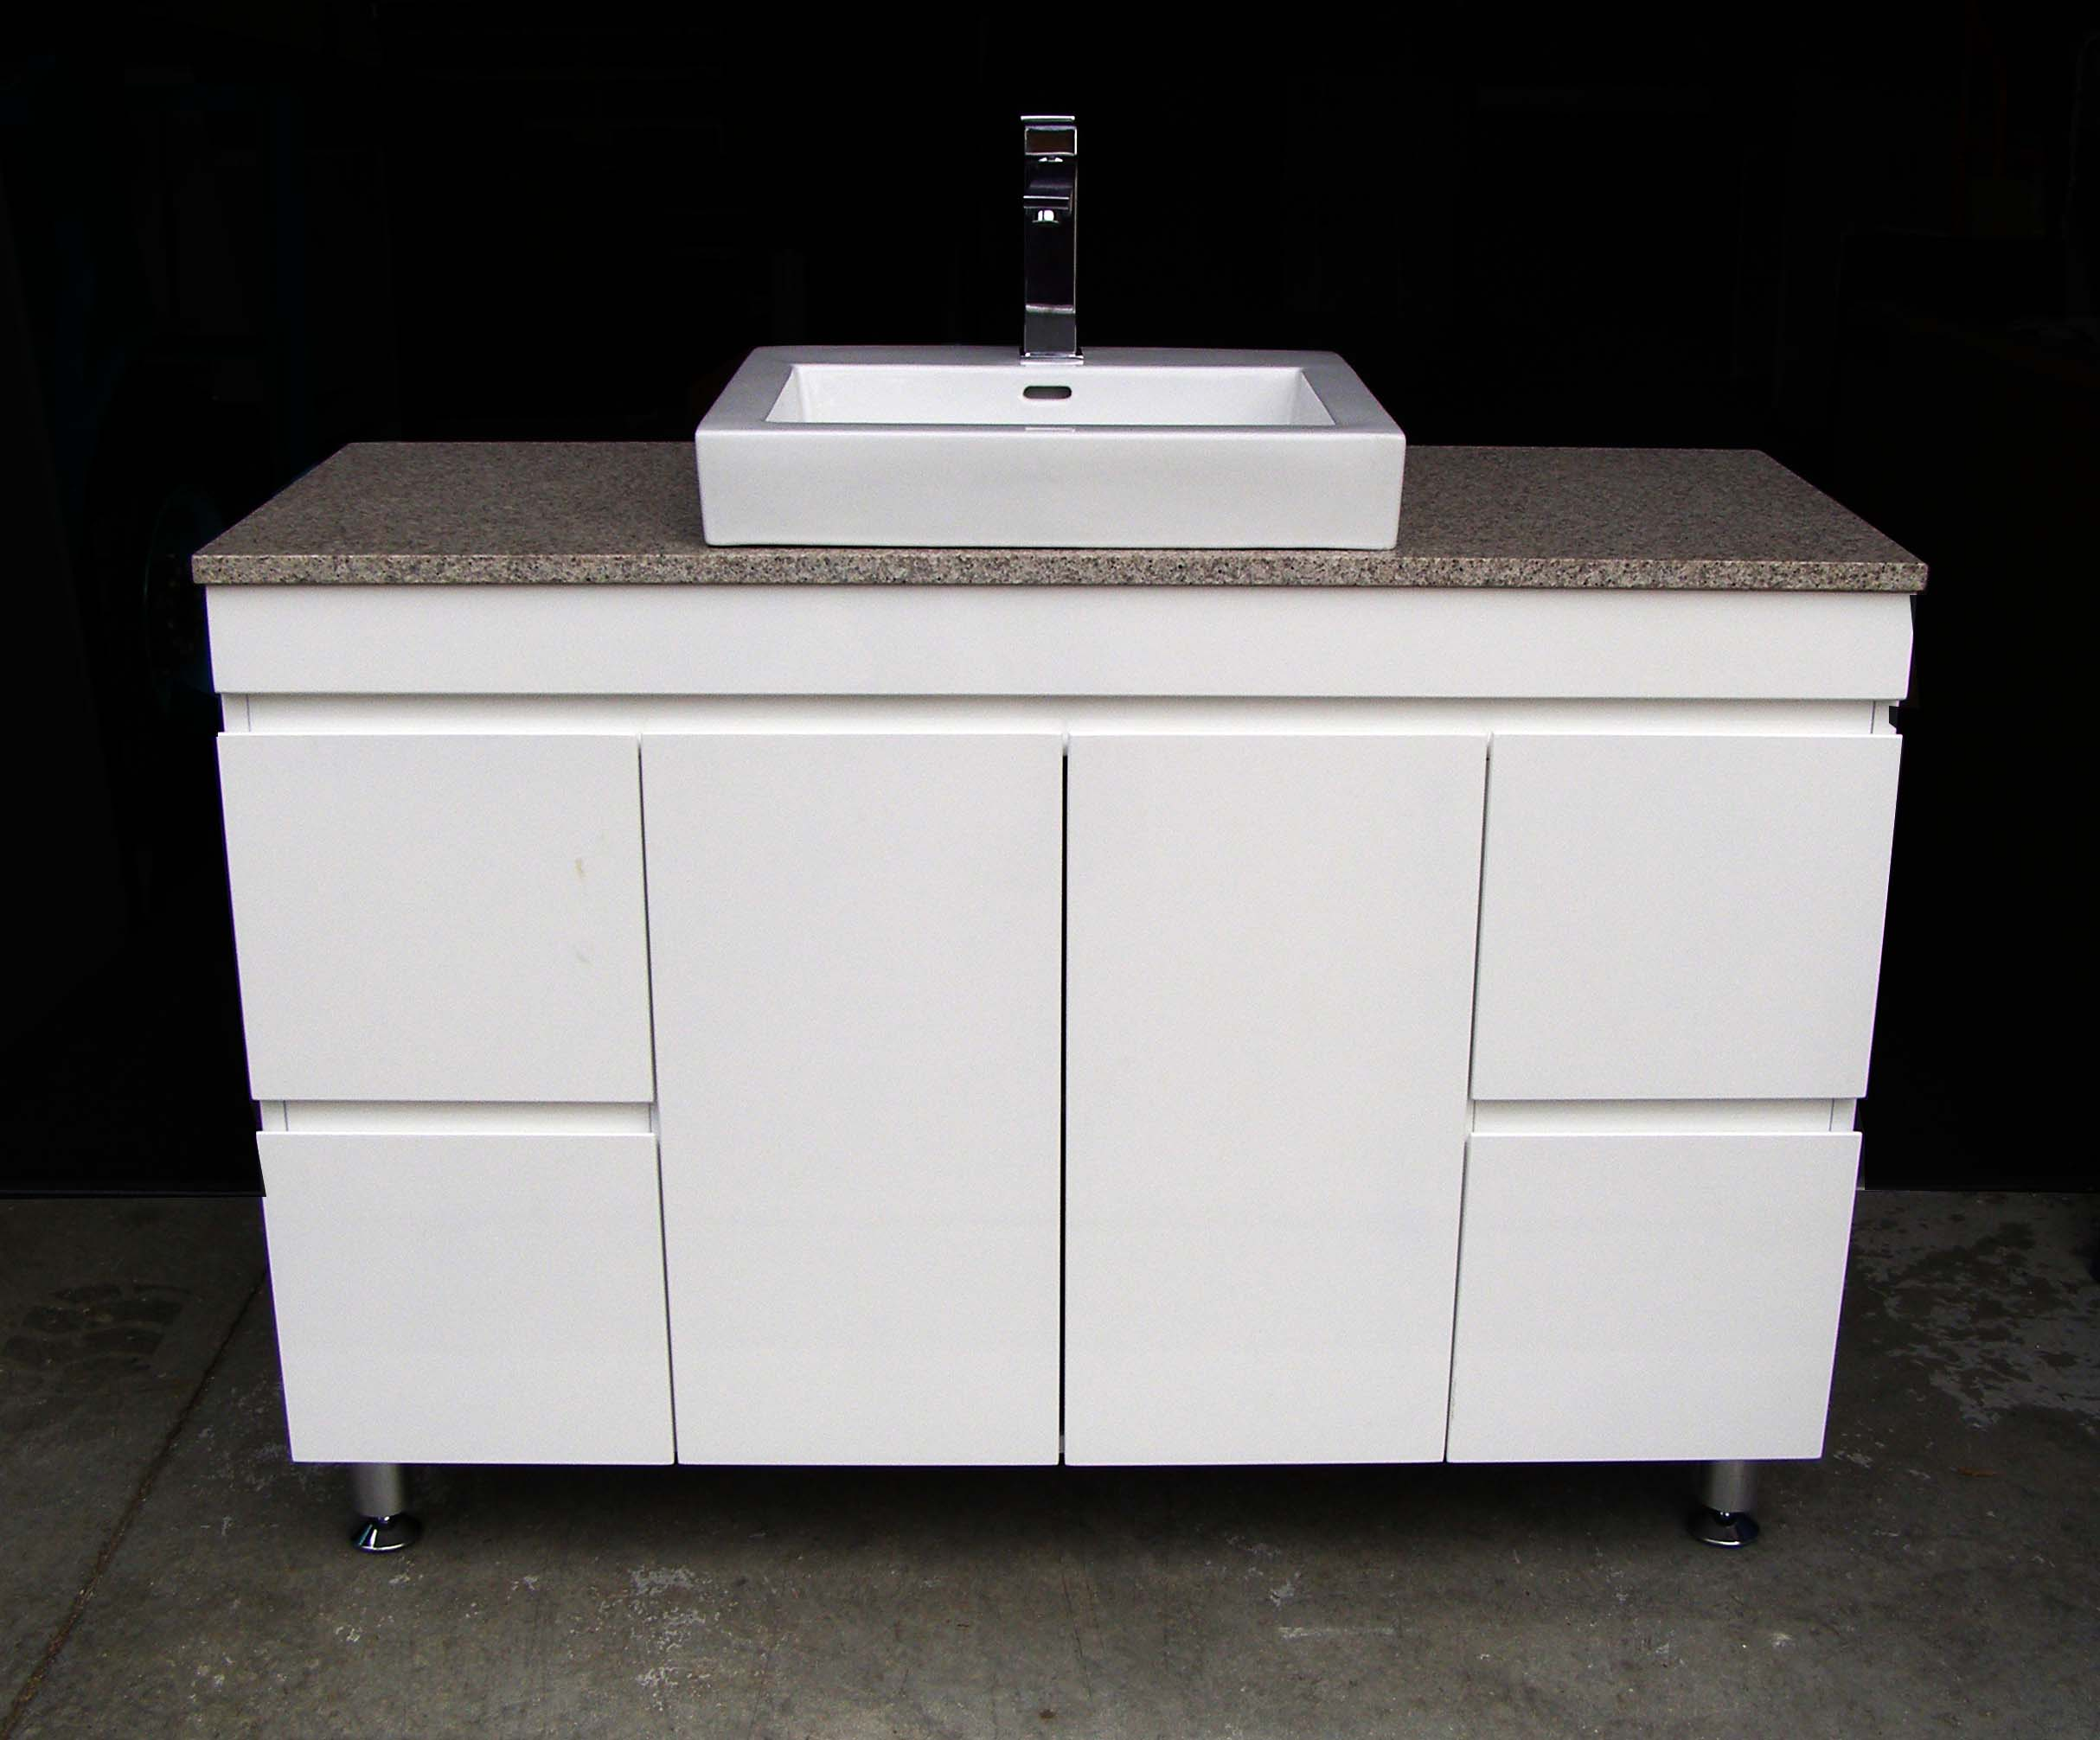 Vanity Tile Top : Euro fwpl sdr high gloss polyurethane vanity with stone